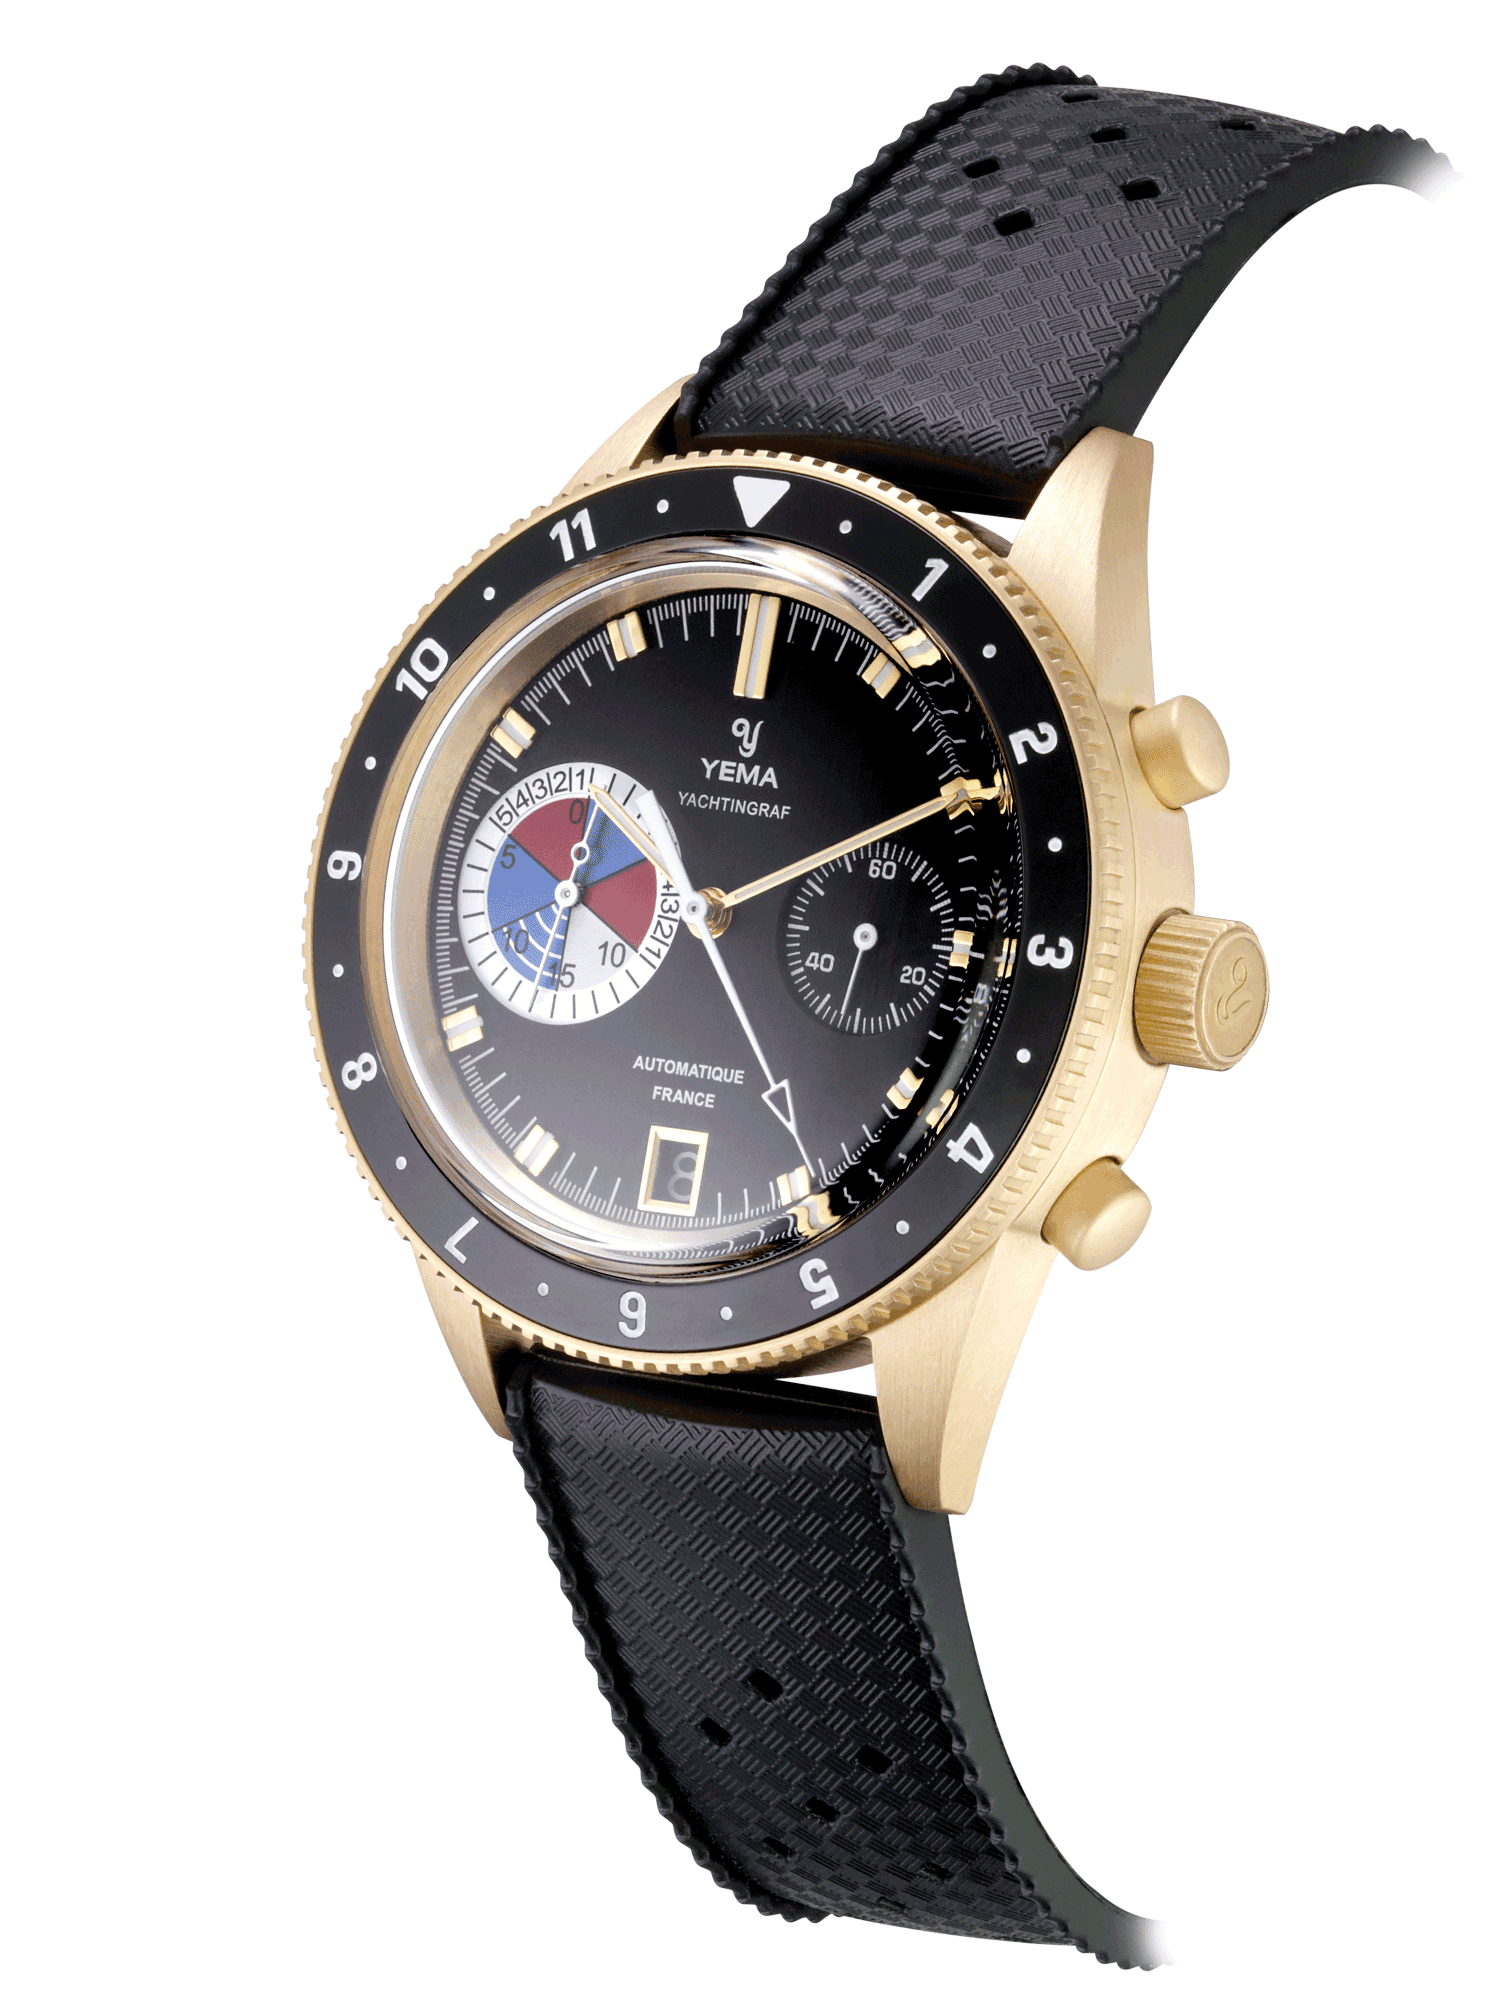 YEMA Yachtingraf Bronze Limited Edition, bronze case, black diving strap